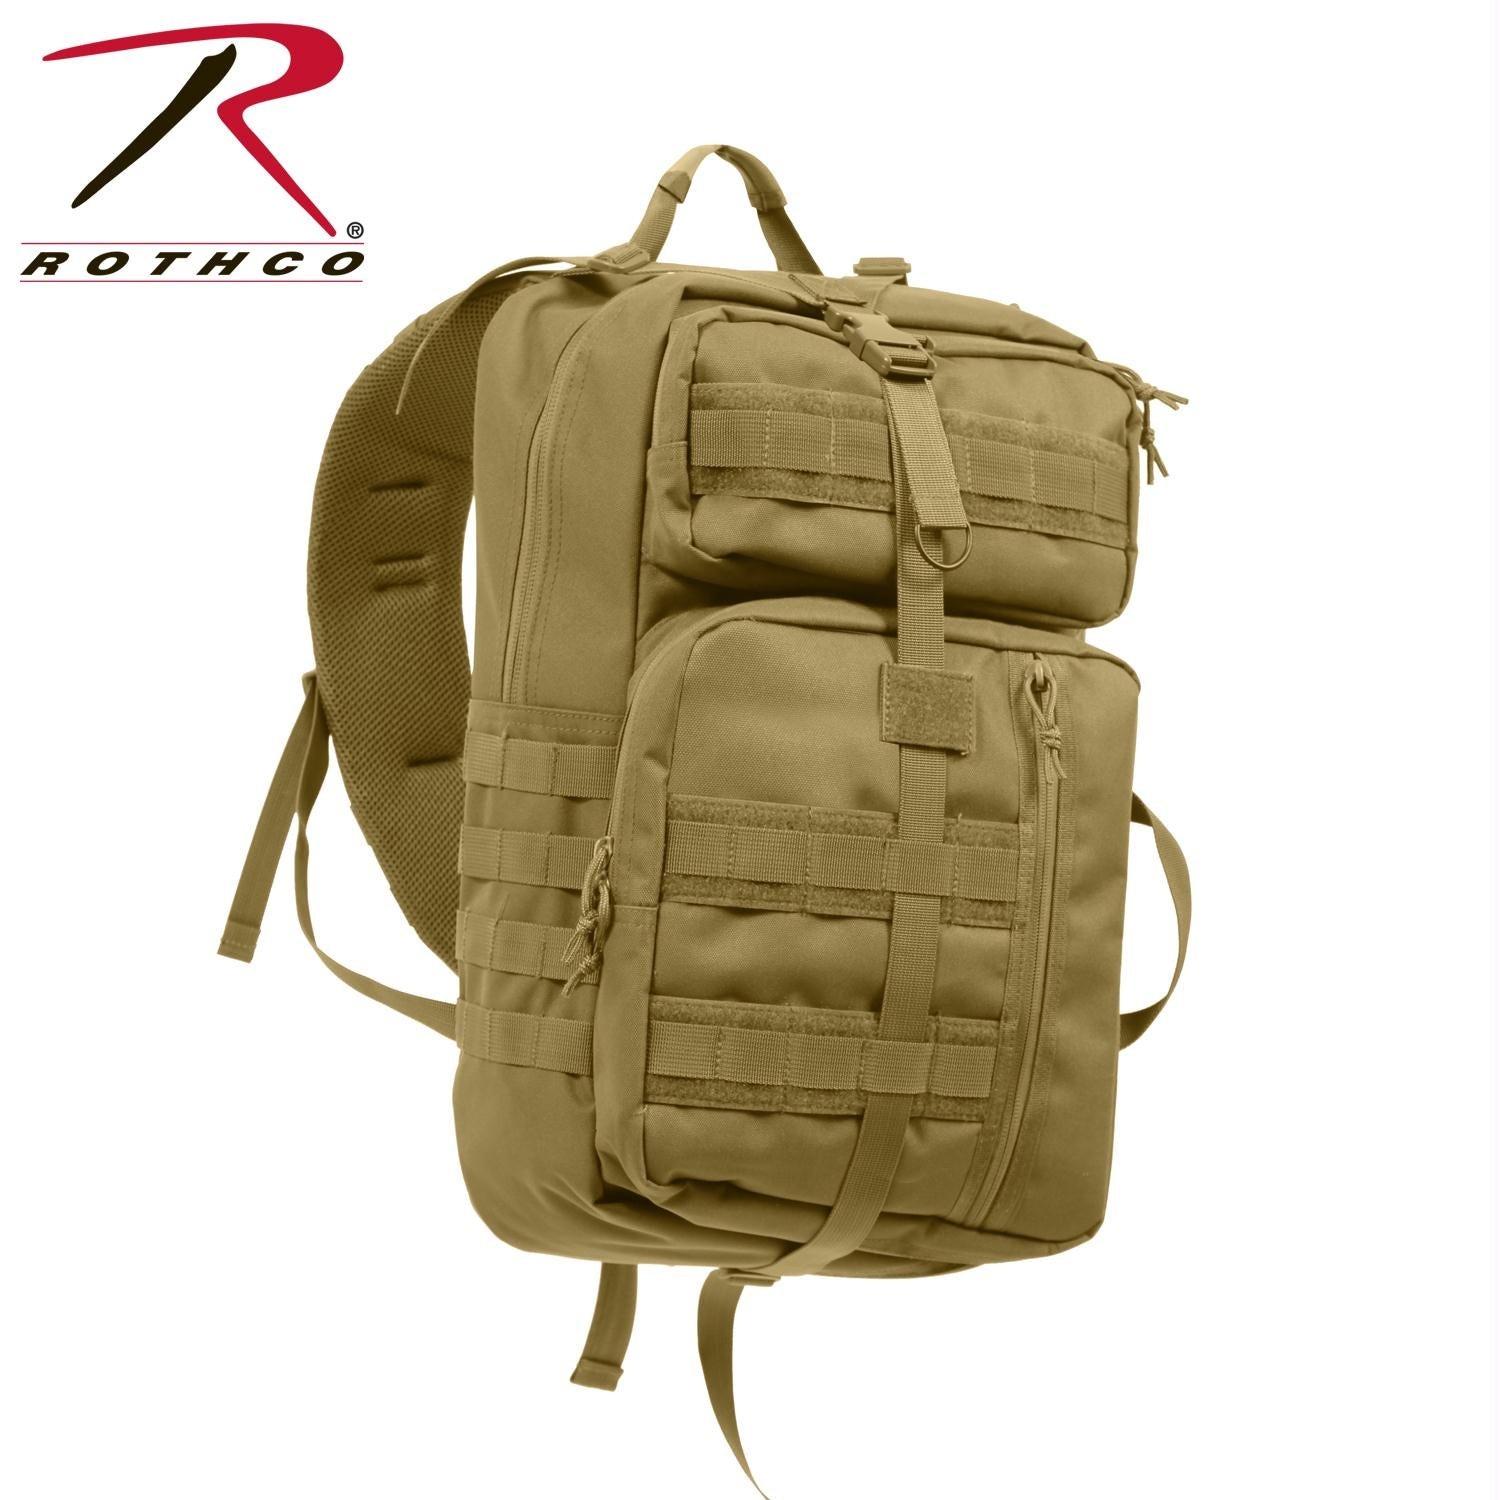 Rothco Tactisling Transport Pack - Coyote Brown